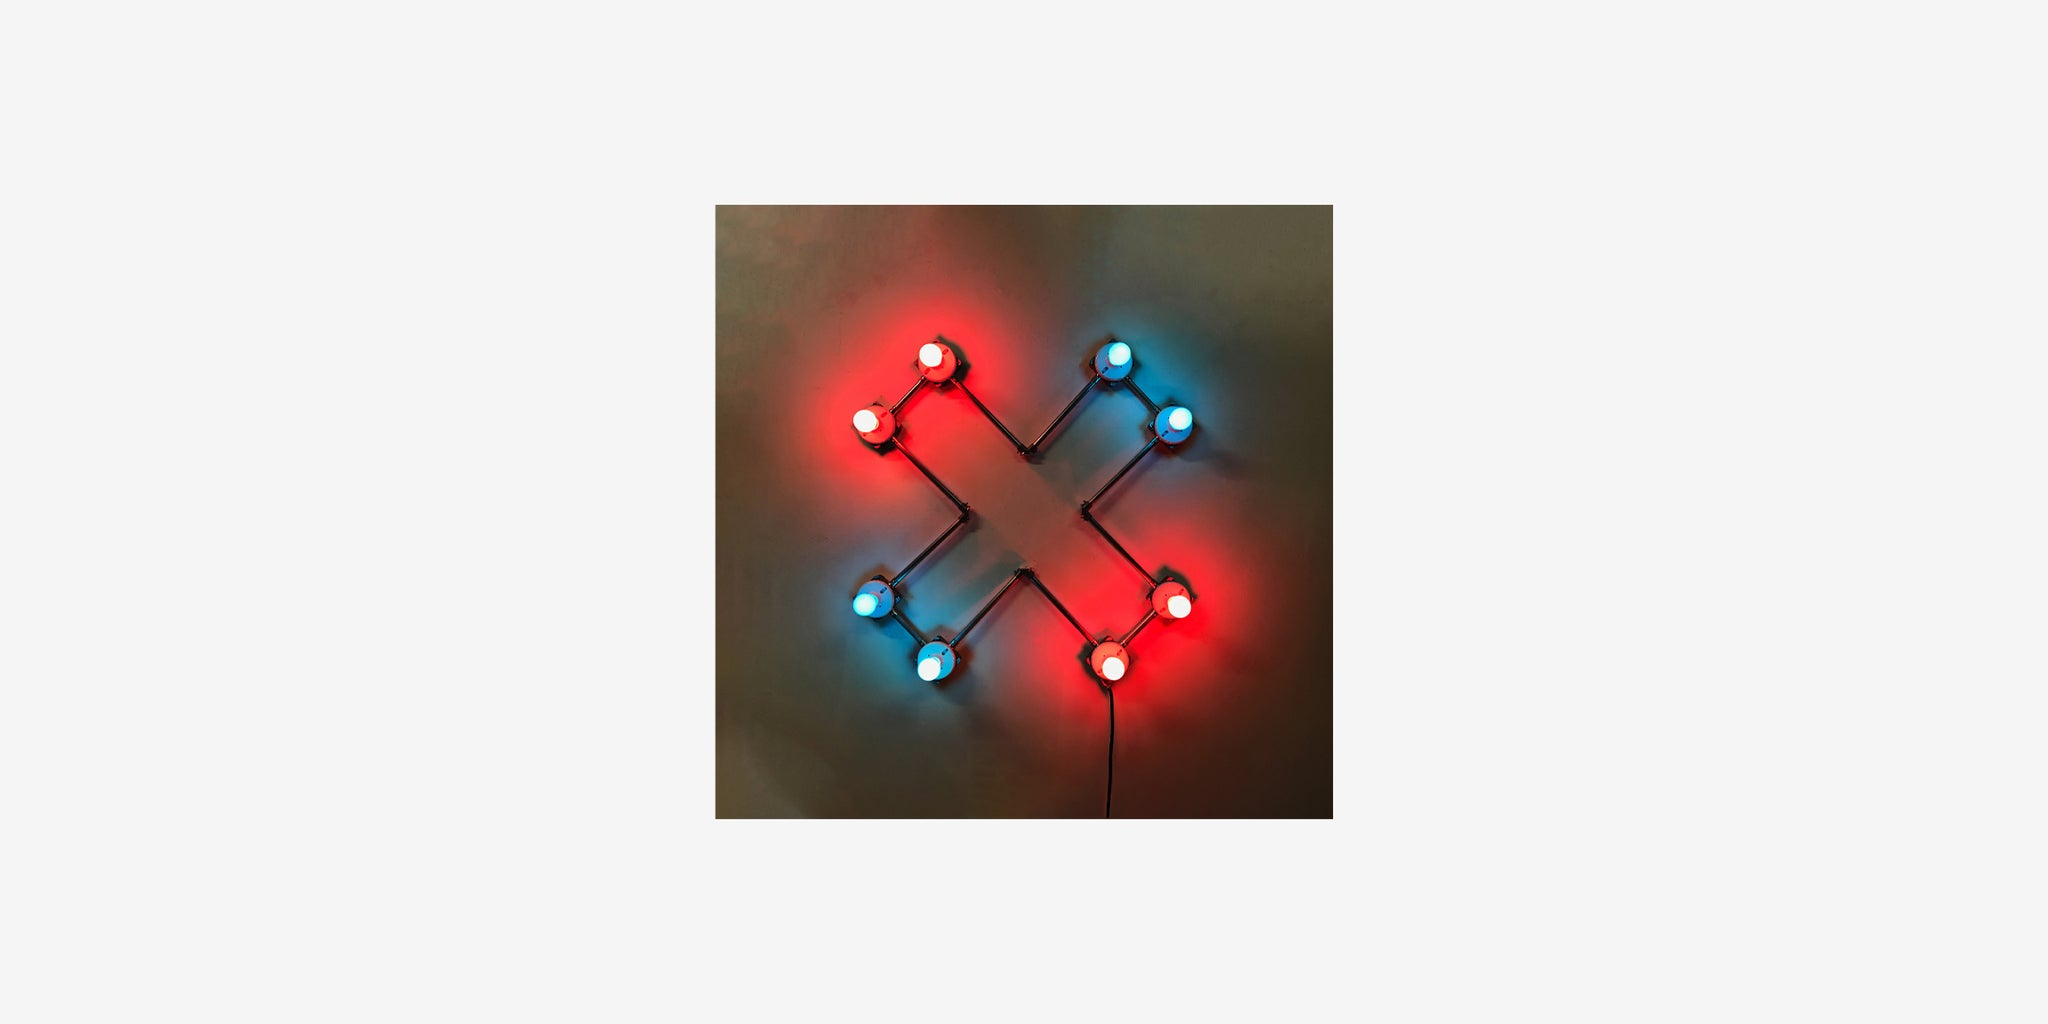 ART - Conduits in Red and Blue (Figure 69)